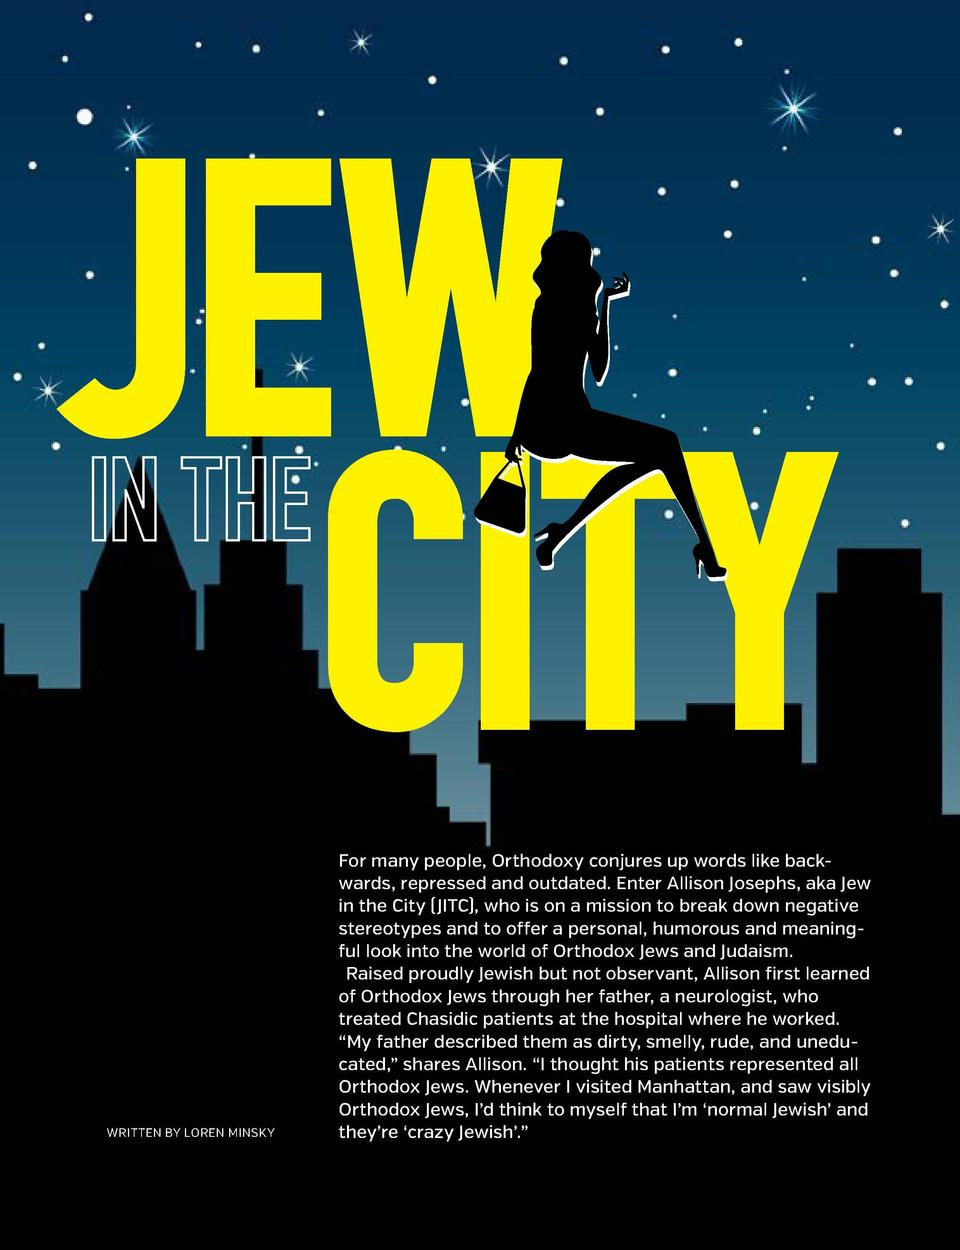 JEW CITY WRITTEN BY LOREN MINSKY  For many people, Orthodoxy conjures up words like backwards, repressed and outdated. Ent...